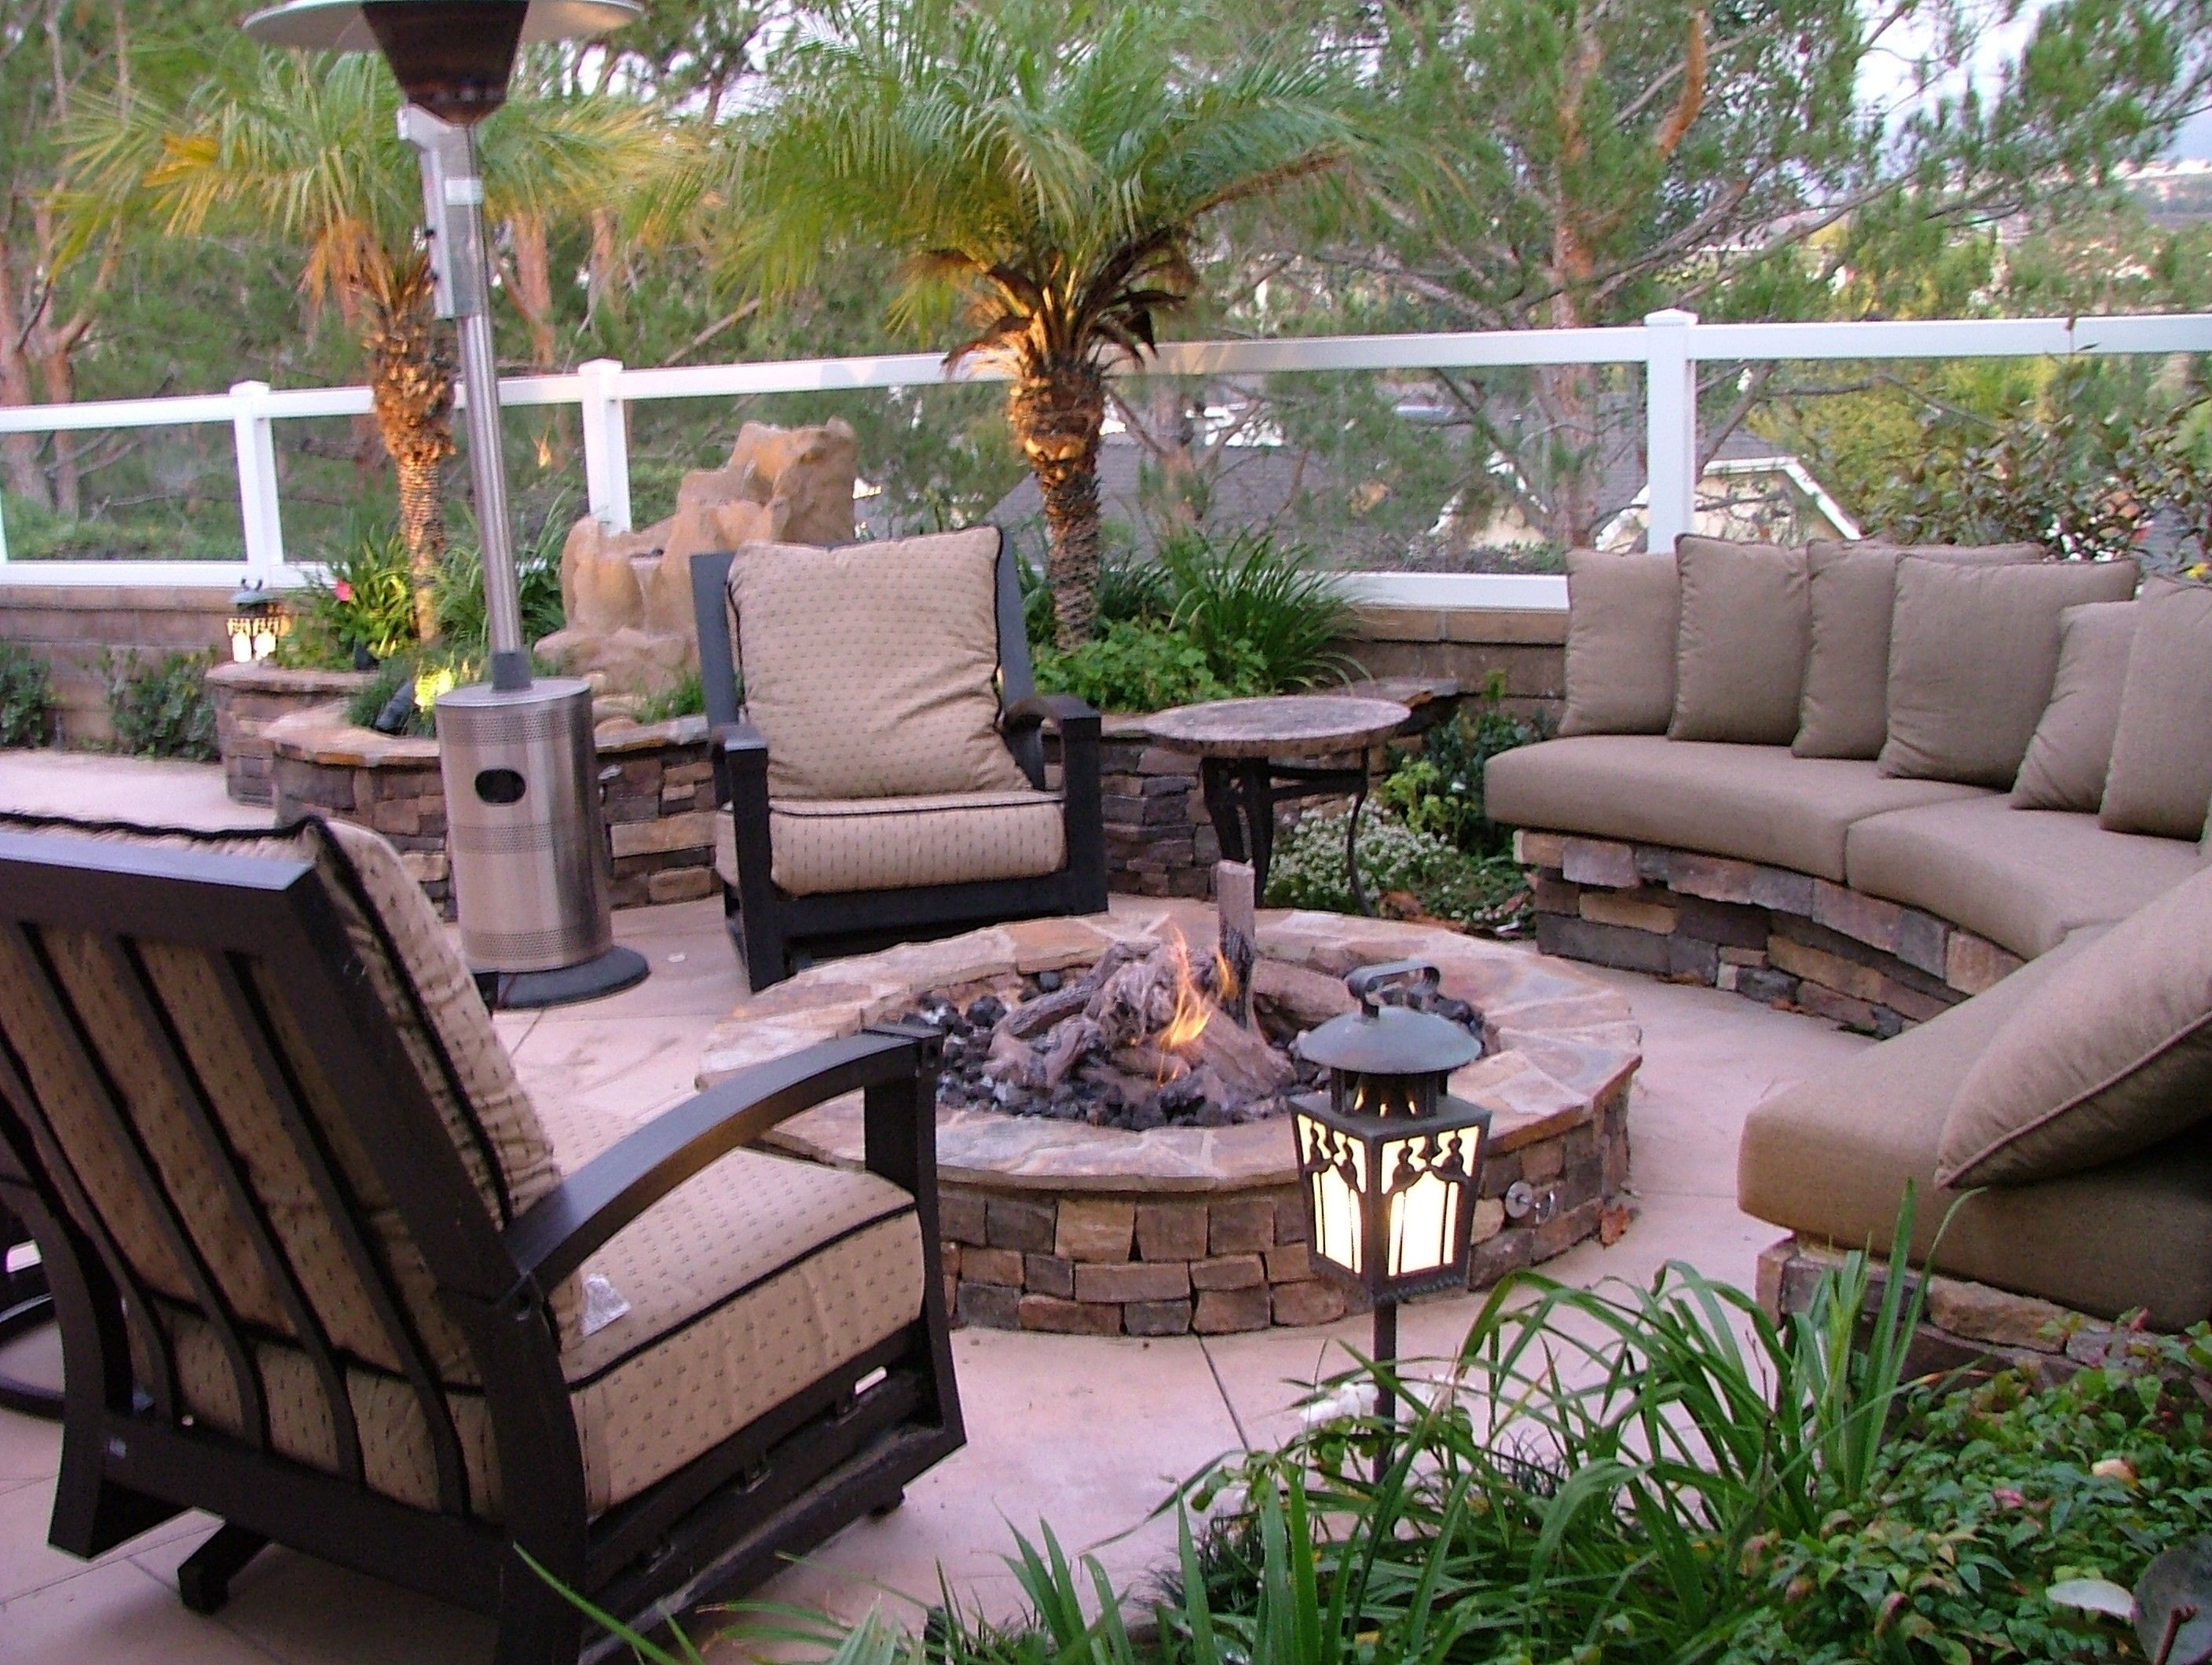 exterior home outdoor fire pit design ideas home fire pit diy - Outdoor Fire Pit Design Ideas